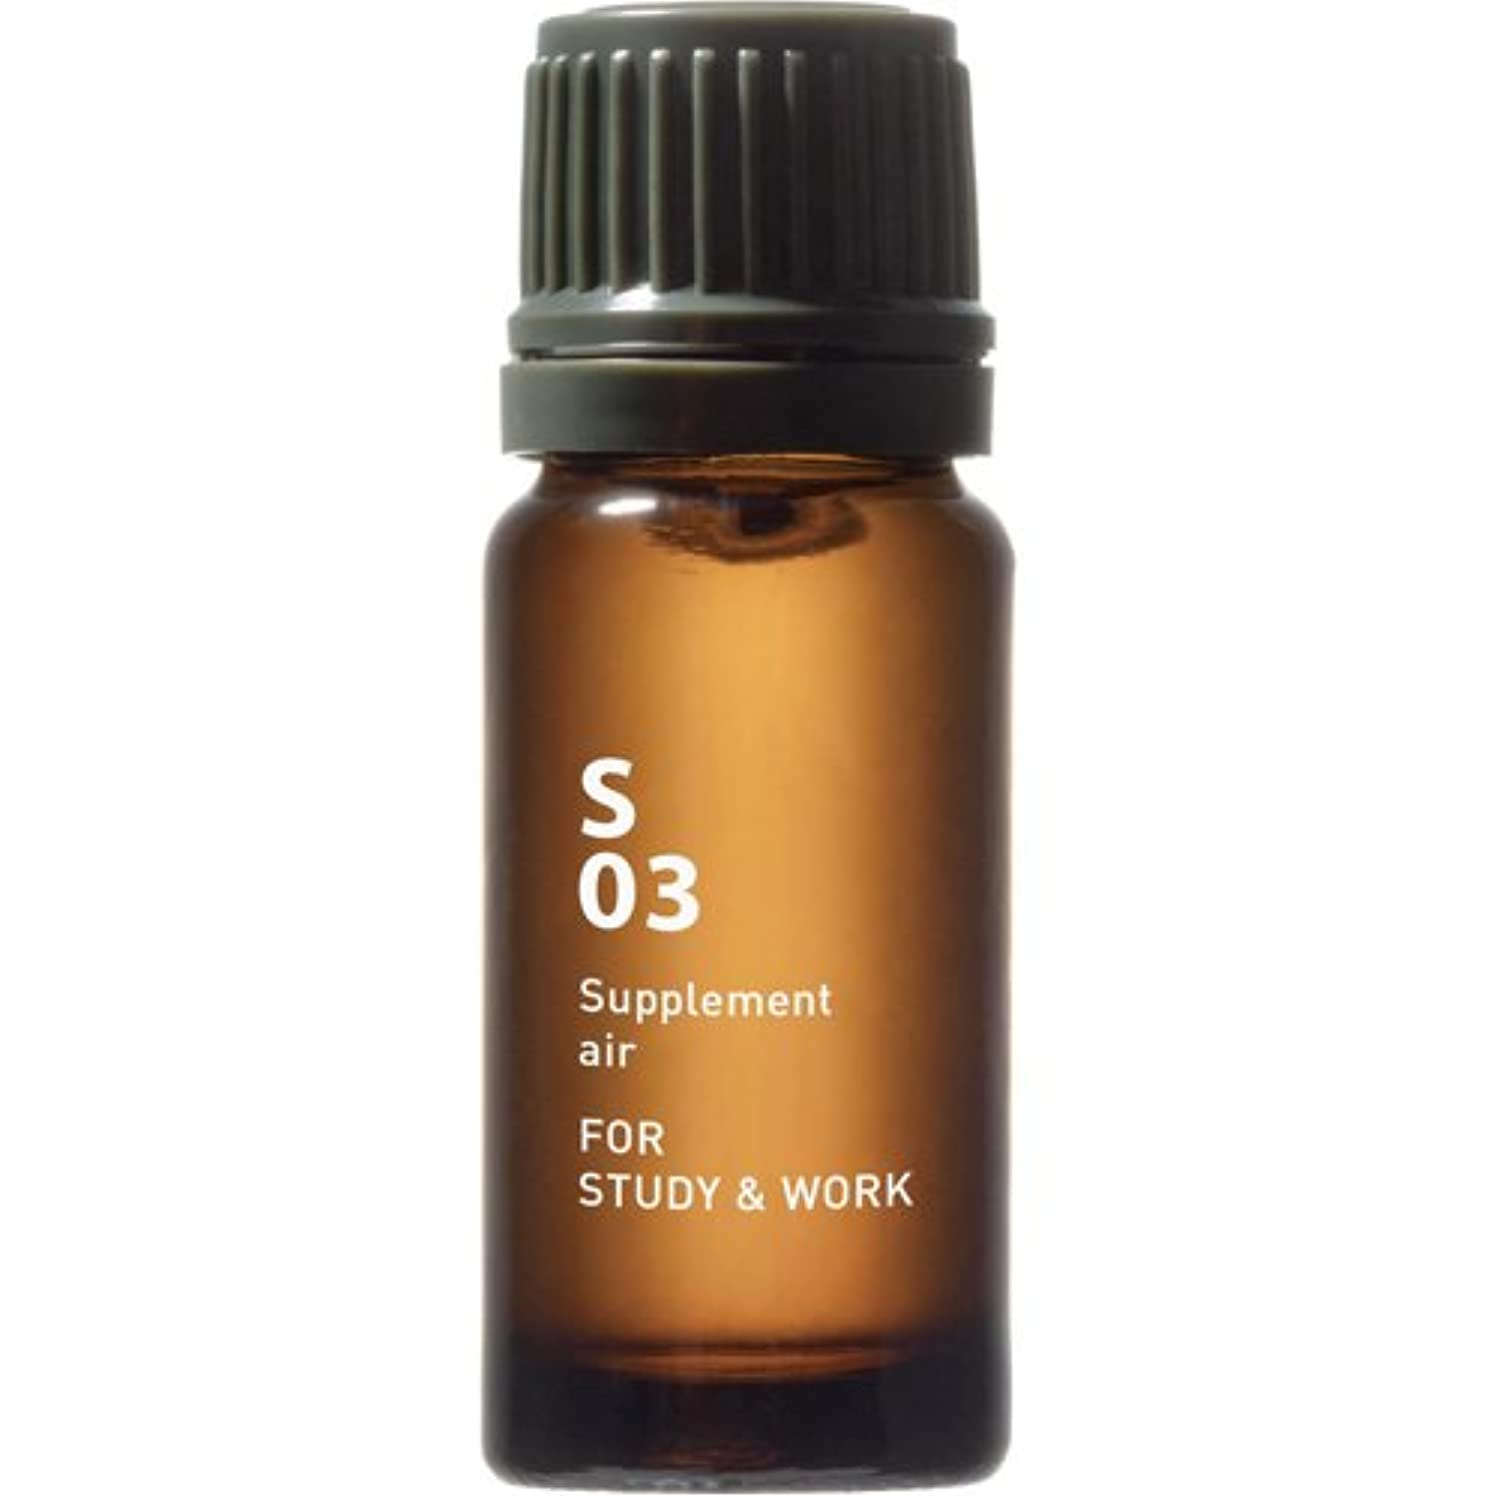 素朴なメディア褐色S03 FOR STUDY & WORK Supplement air 10ml